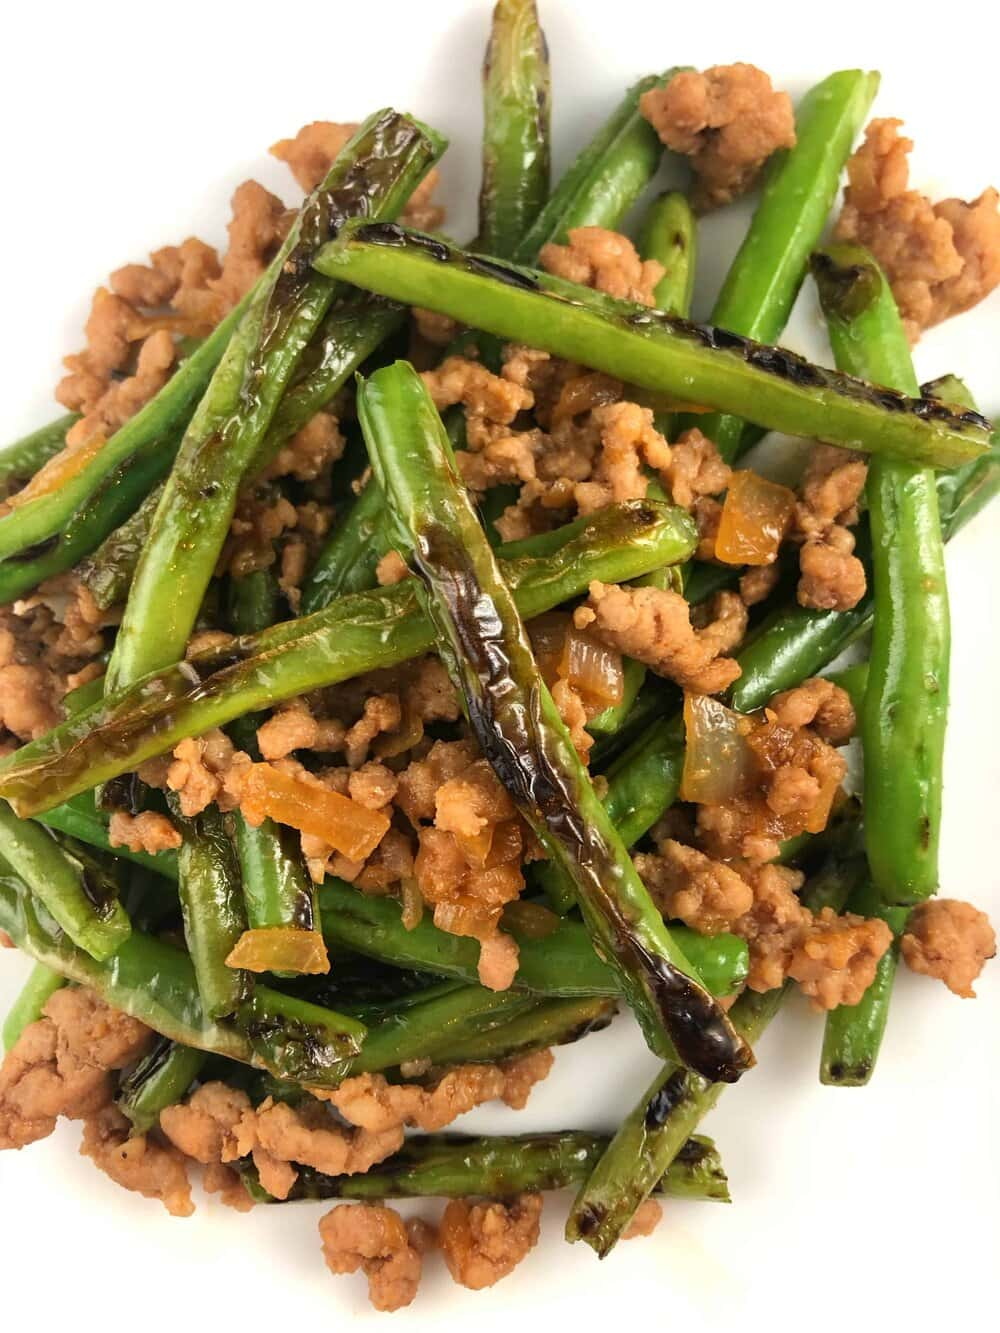 Missouri Girl Spicy Asian Pork with charred Green beans. Missouri Girl Blog